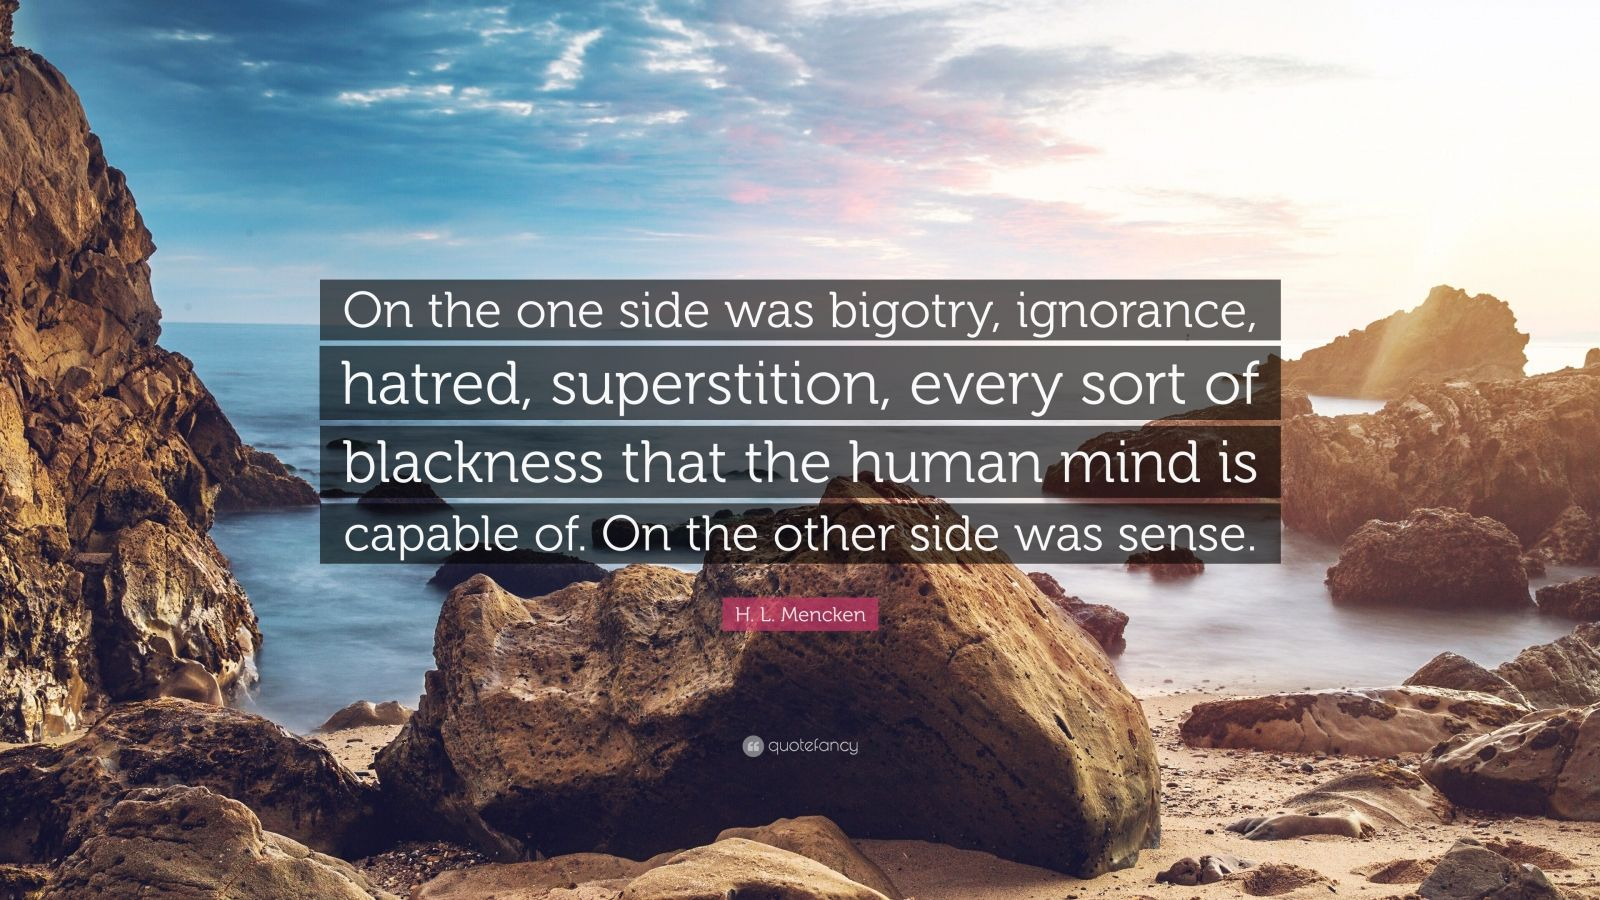 """H. L. Mencken Quote: """"On the one side was bigotry, ignorance, hatred, superstition, every sort of blackness that the human mind is capable of. On the other side was sense."""""""